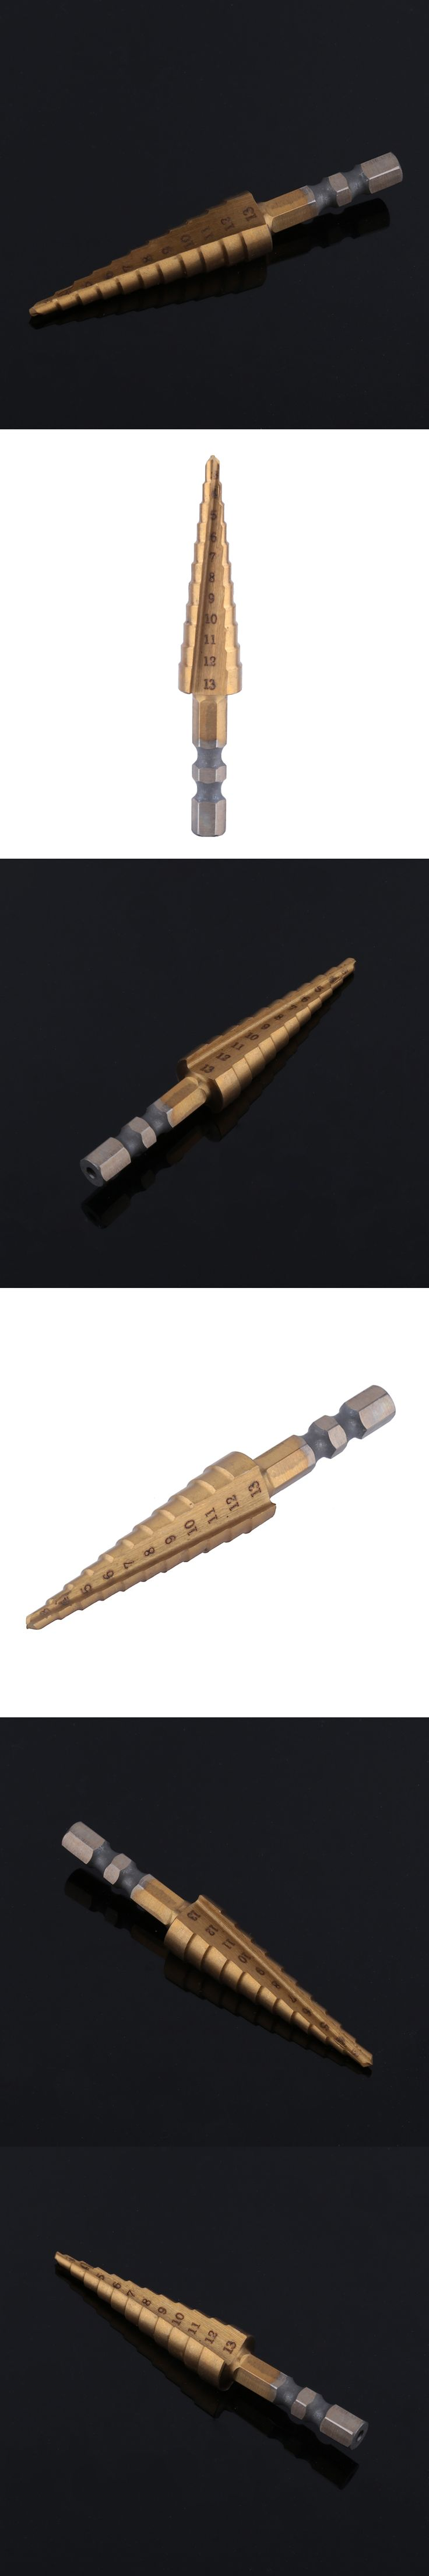 1pc HSS Titanium Coated Step Cone Drill Bit High Speed Steel Hex Step Drill Bits Hole Cutter Power Tools 3-13mm